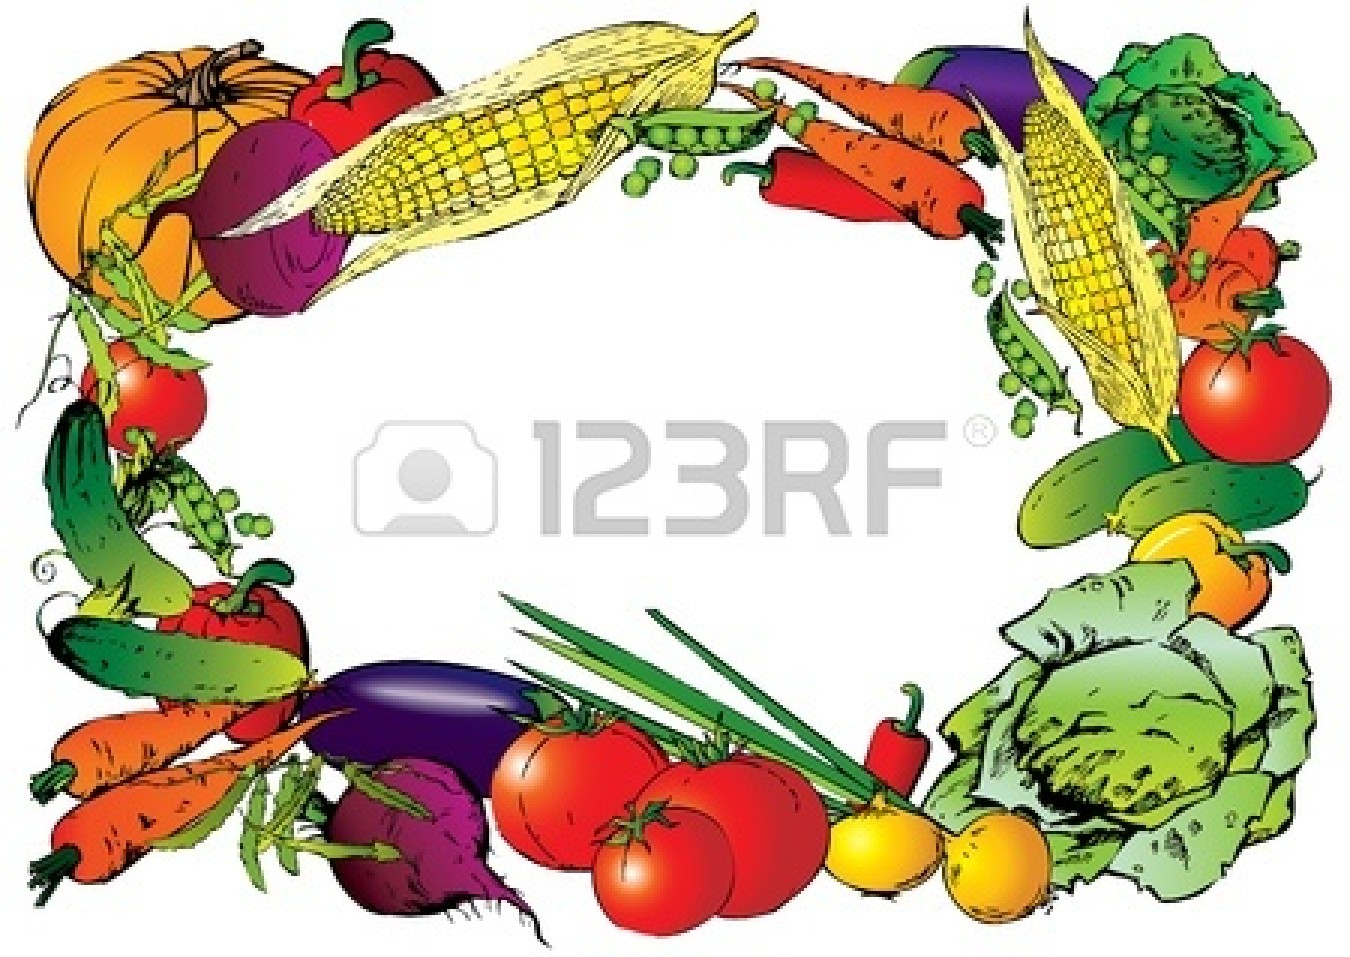 1350x957 Vegetables Clipart Vegetable Gardening